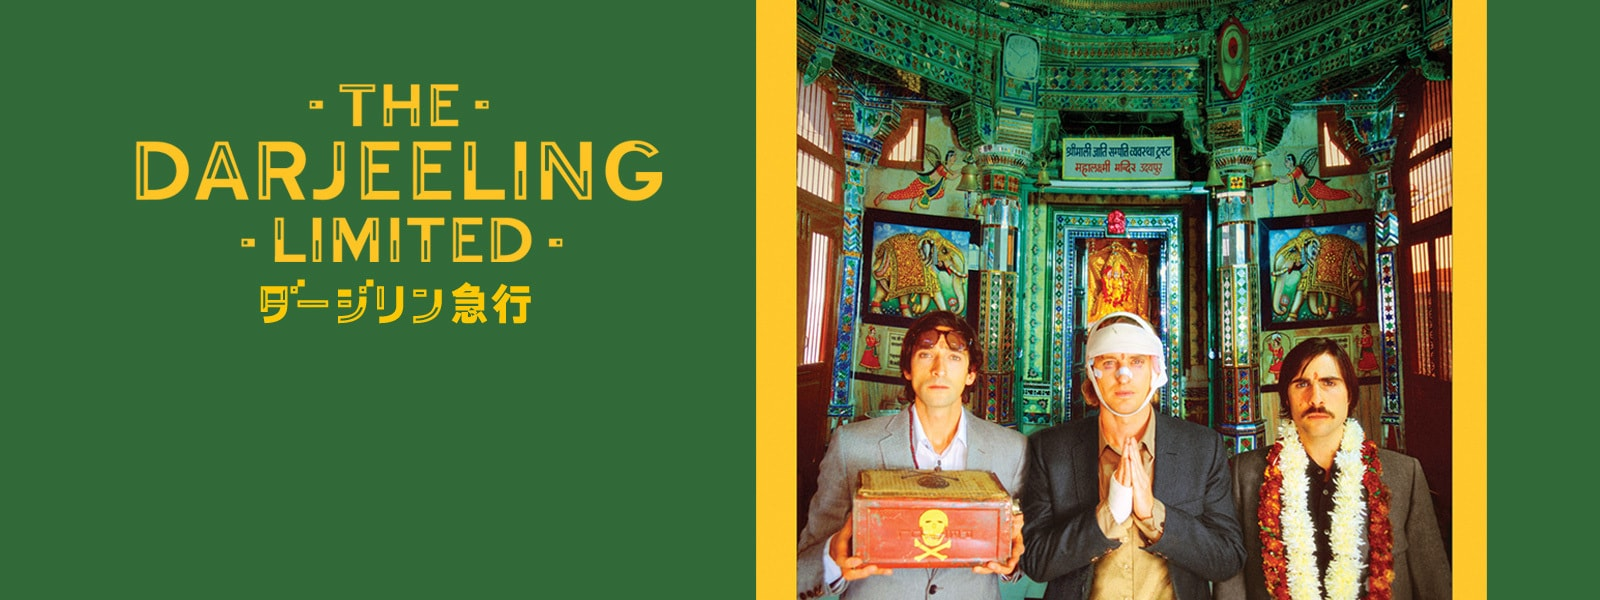 ダージリン急行|The Darjeeling Limited Hero Object